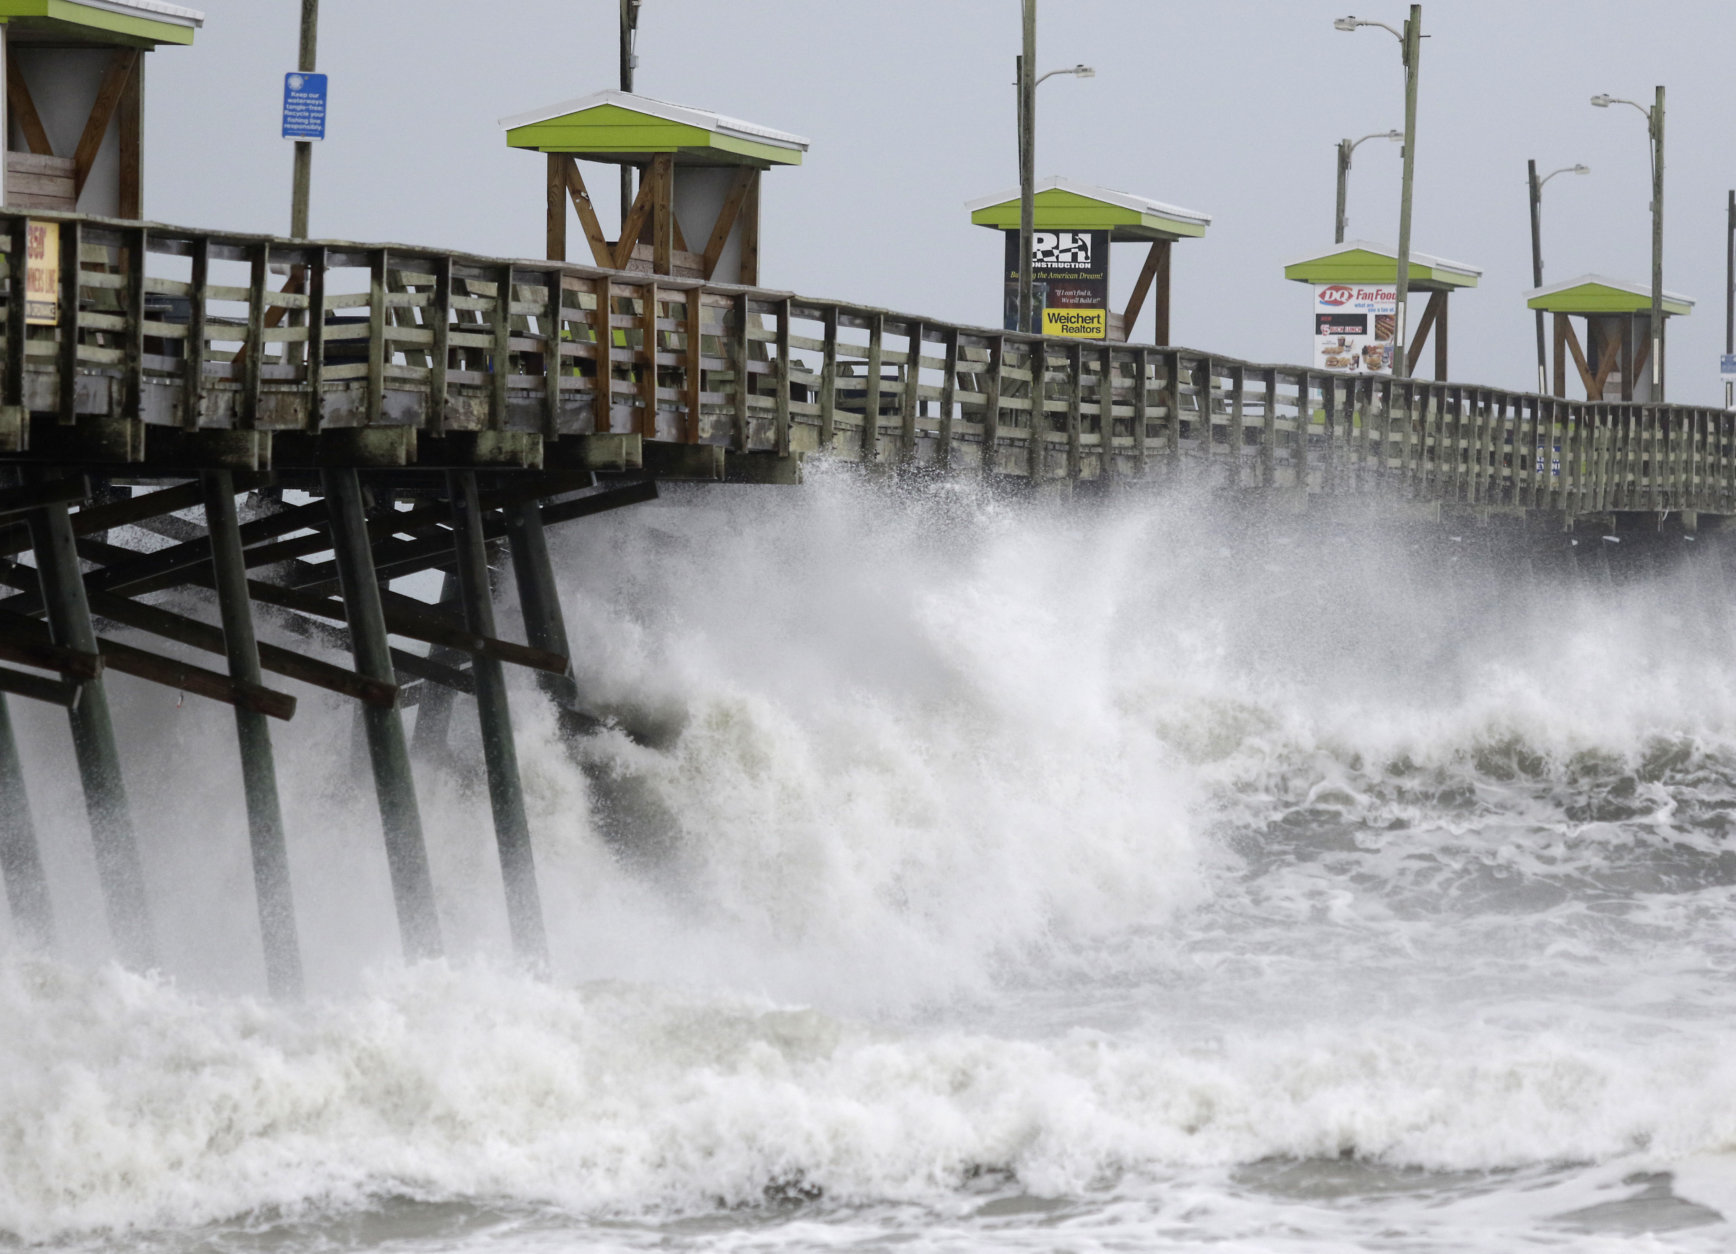 Waves from Hurricane Florence pound the Bogue Inlet Pier in Emerald Isle N.C., Thursday, Sept. 13, 2018. (AP Photo/Tom Copeland)